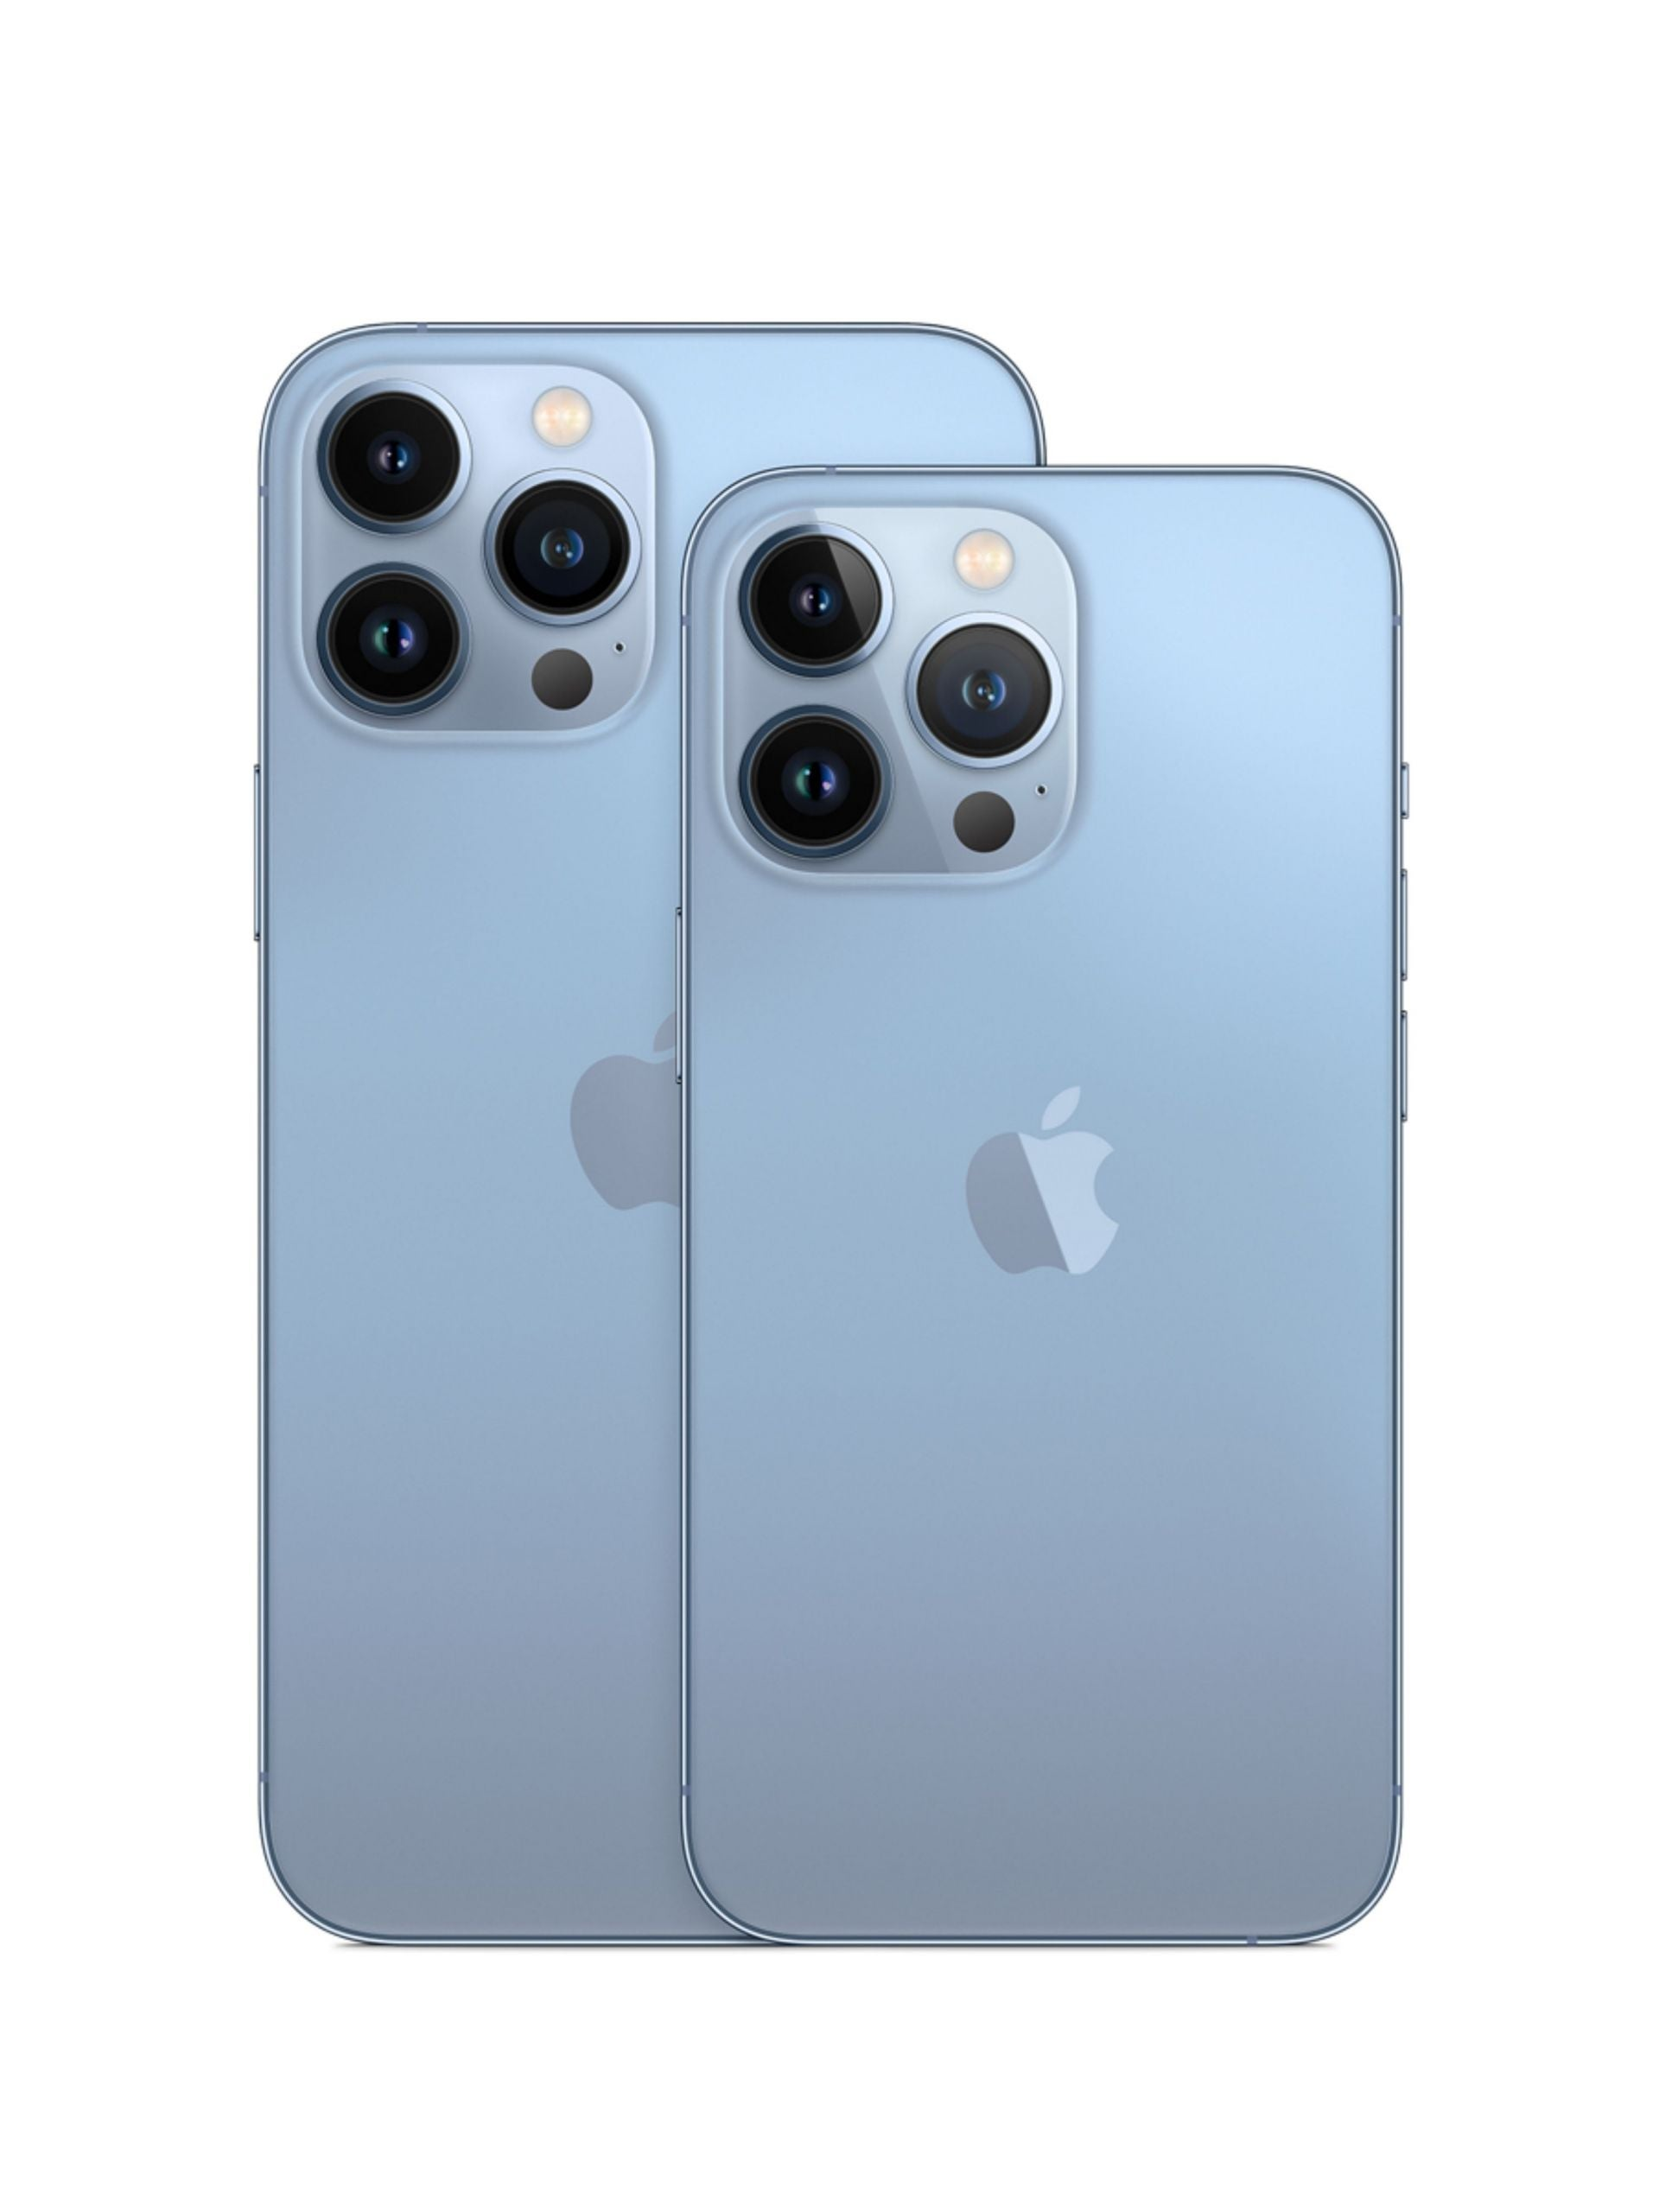 The iPhone 13 Pro and the iPhone 13 Pro Max